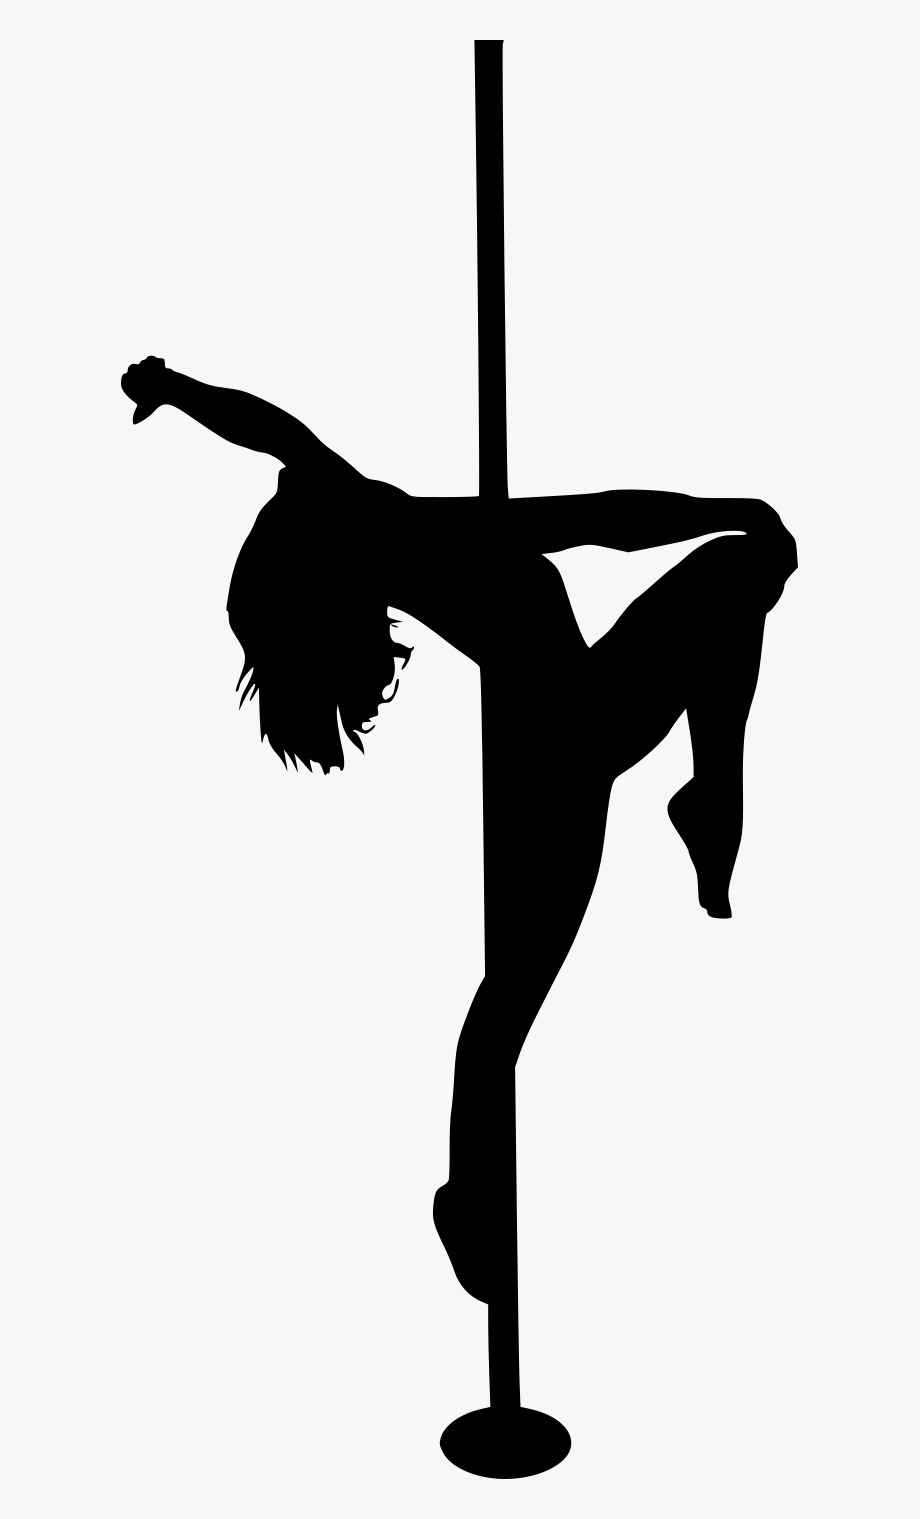 Pole Dancing Silhouette.